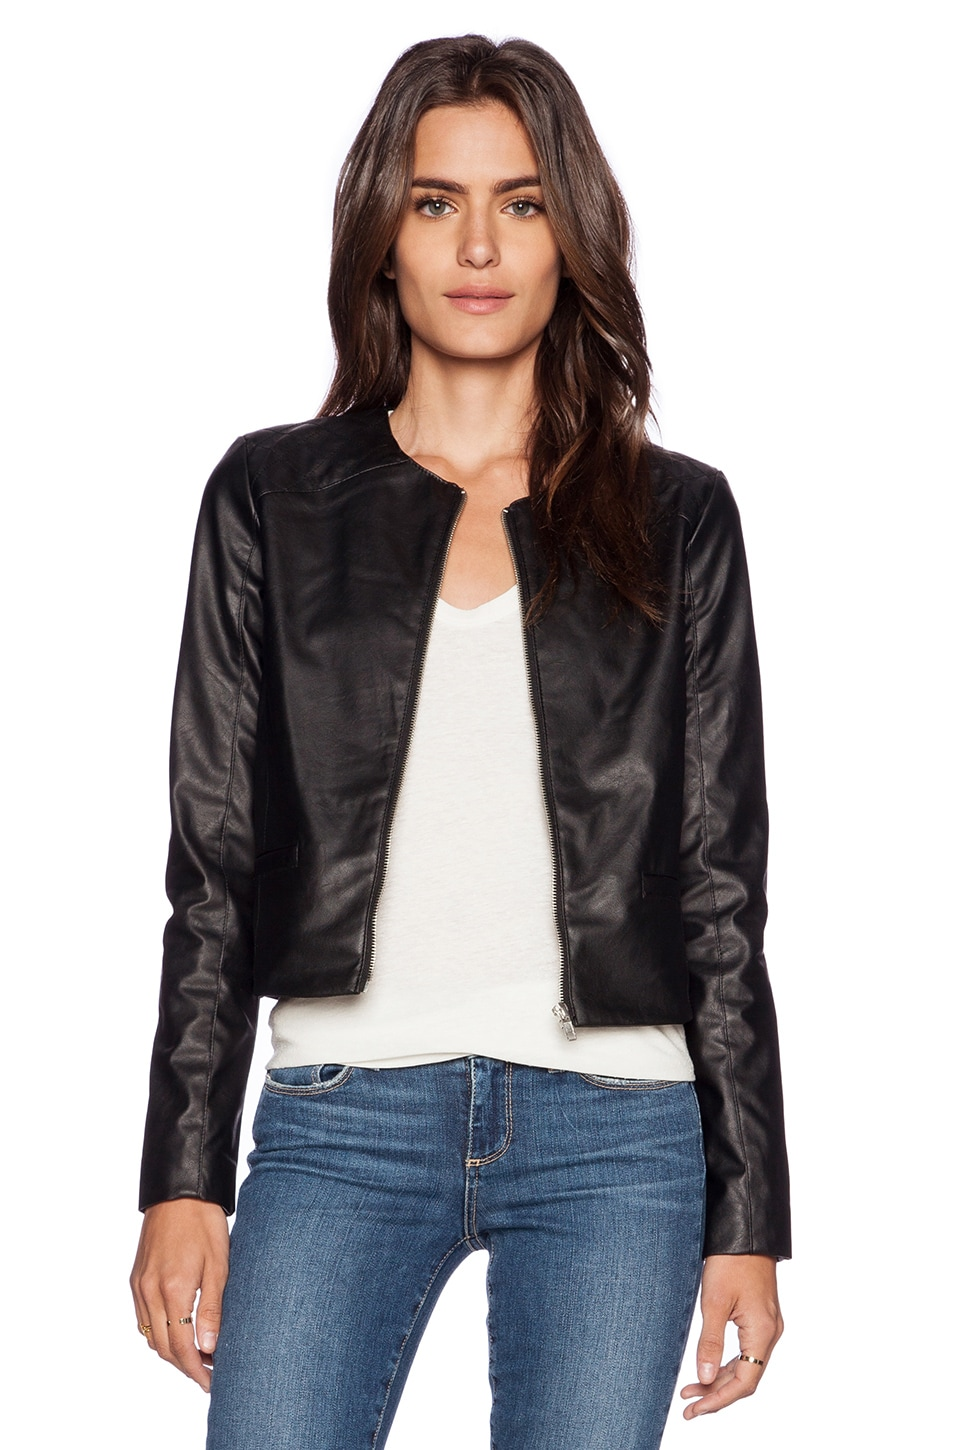 BB Dakota Justice Jacket in Black